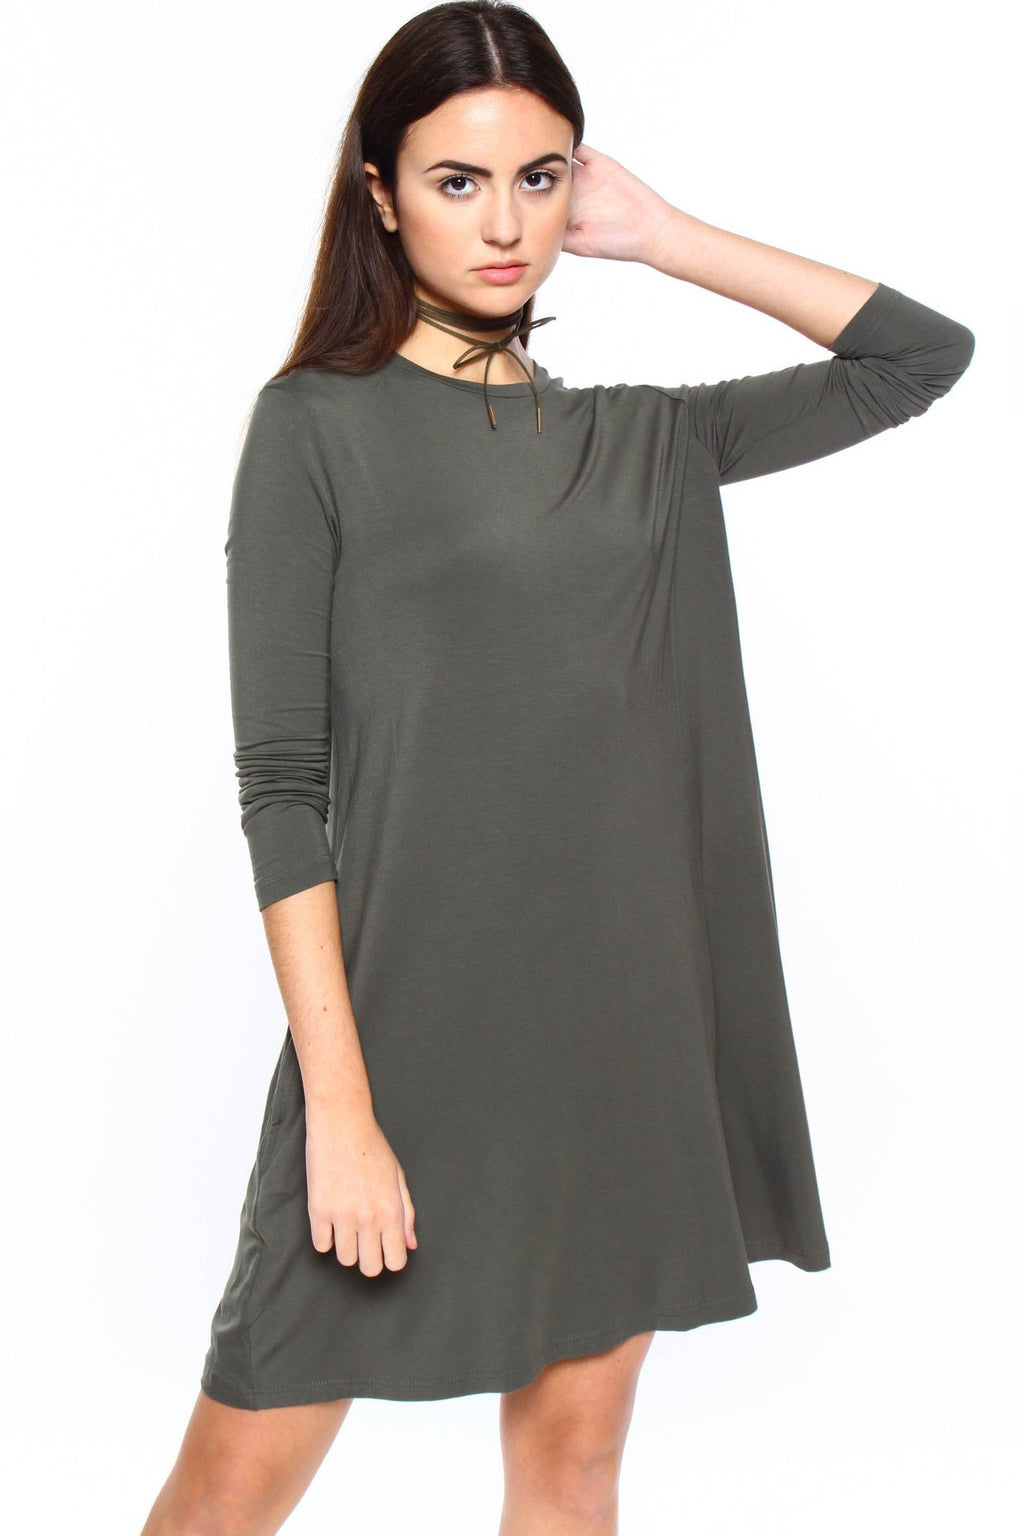 Full Swing Casual Tee Shirt Dress - Army